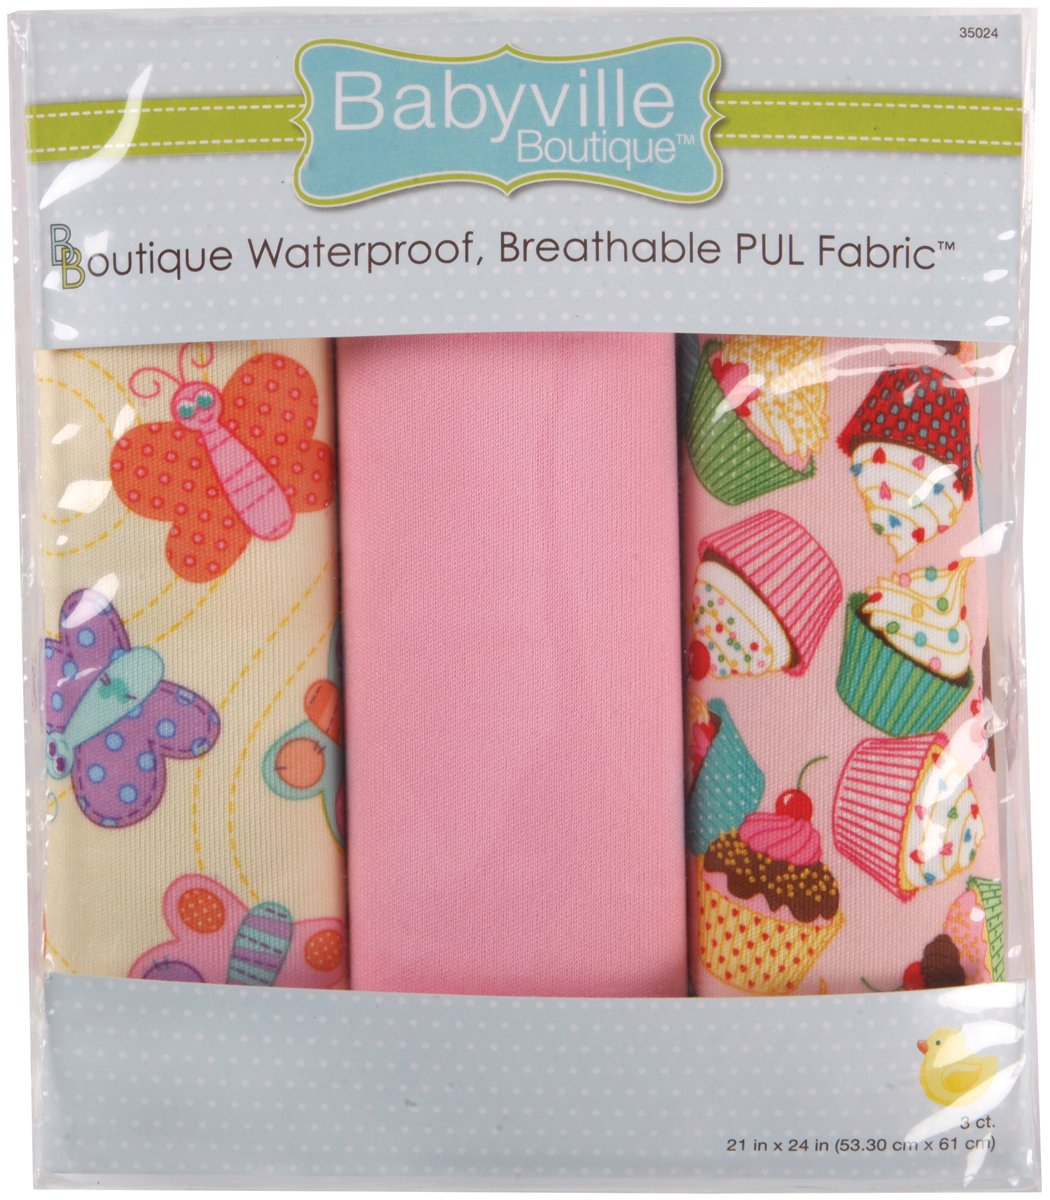 Babyville Boutique Sweet Girl 21in x 24in Laminated Cuts P - copy - copy